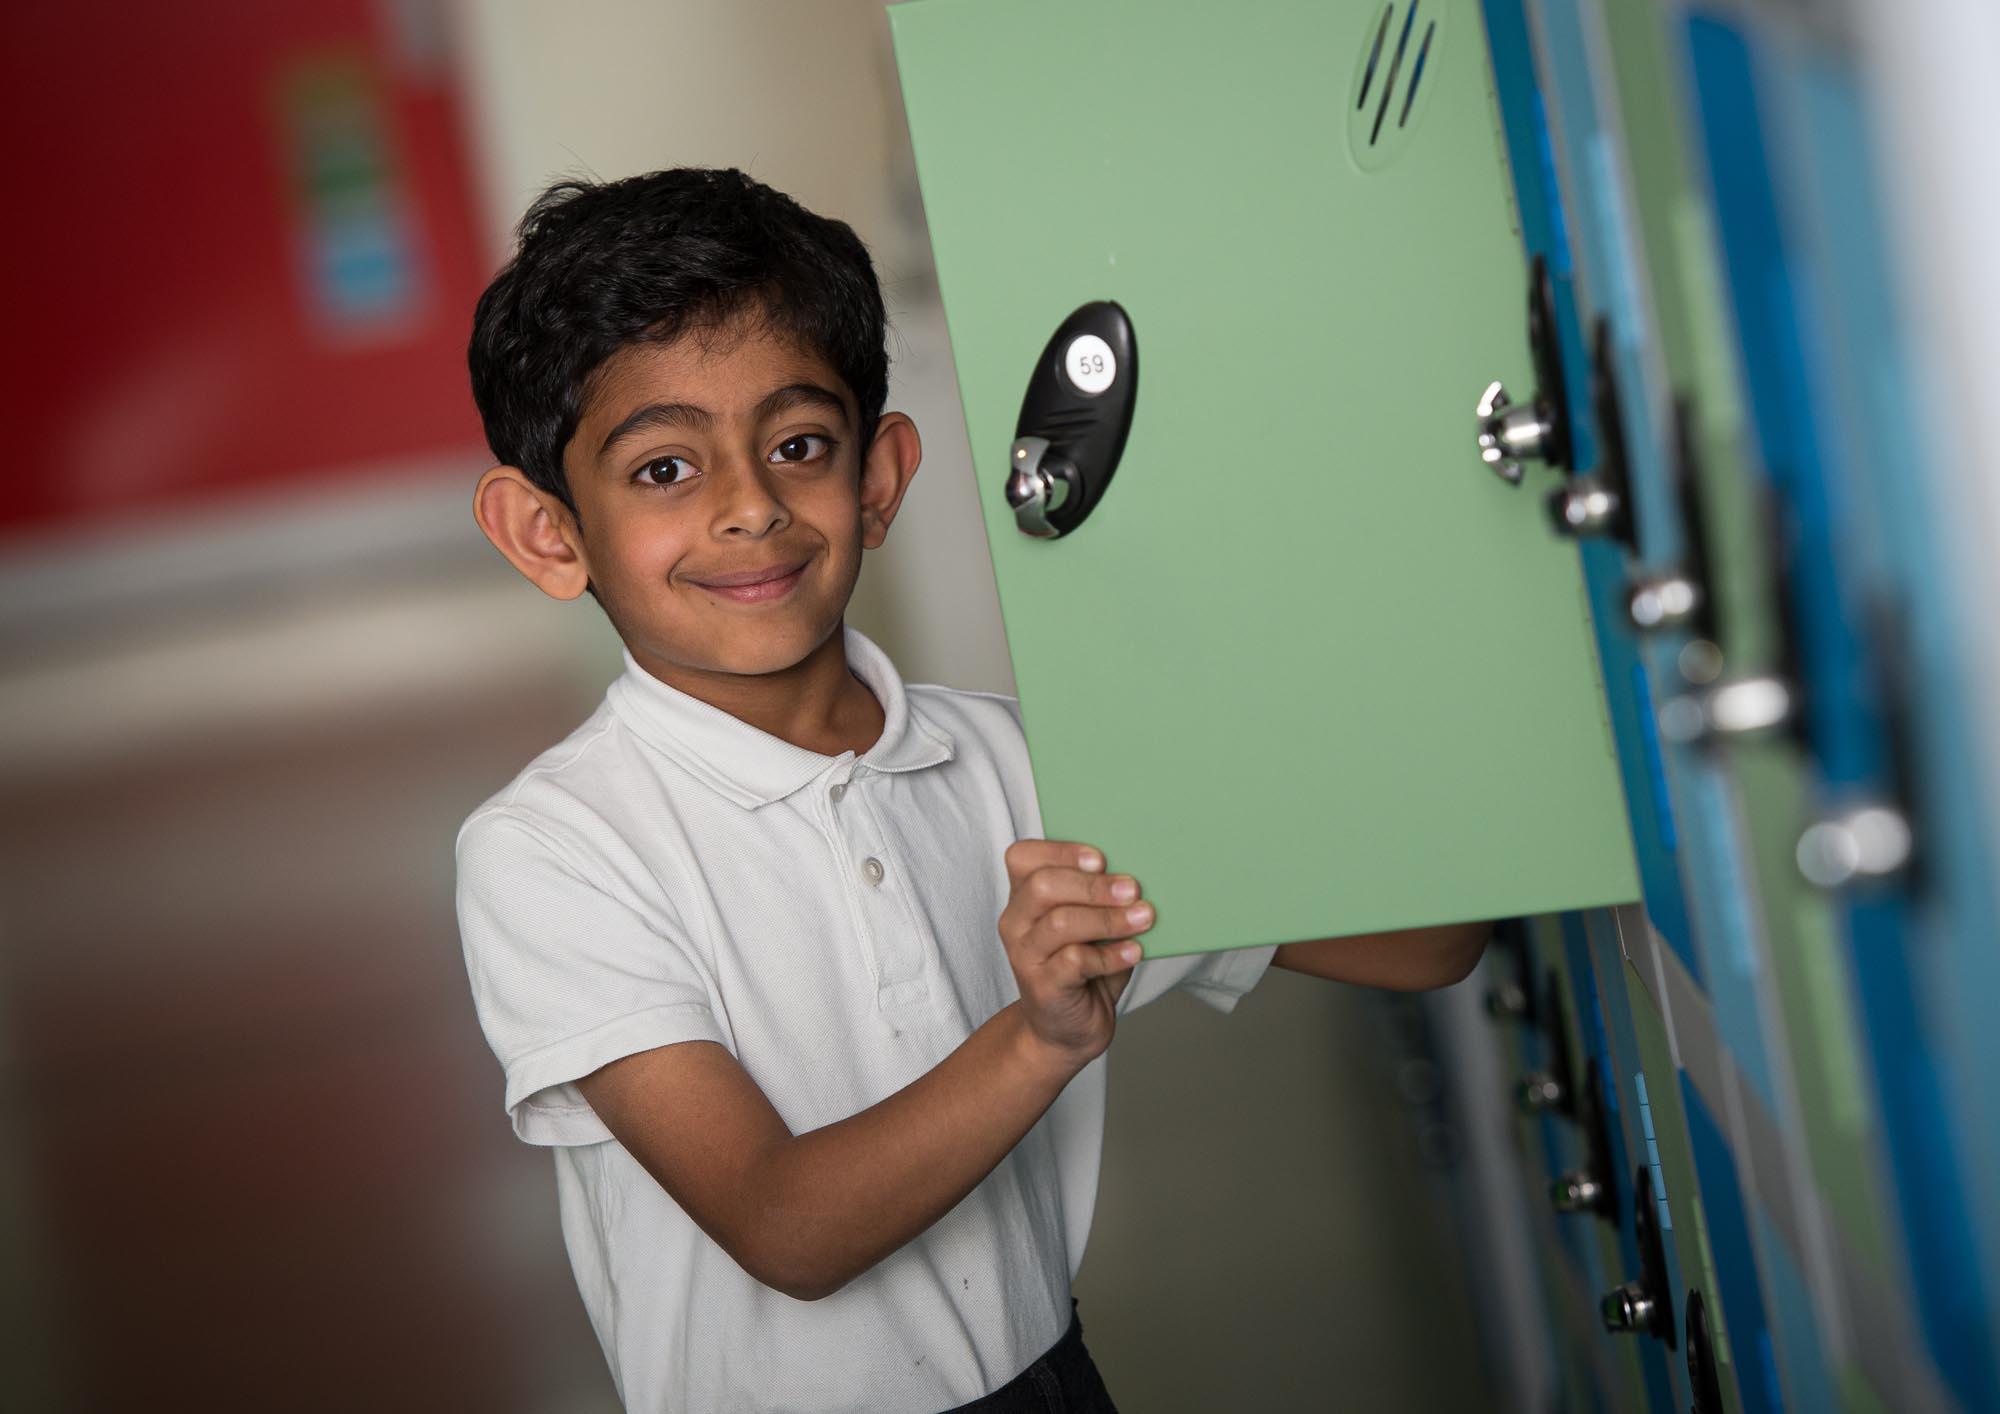 Boy opening locker in corridor